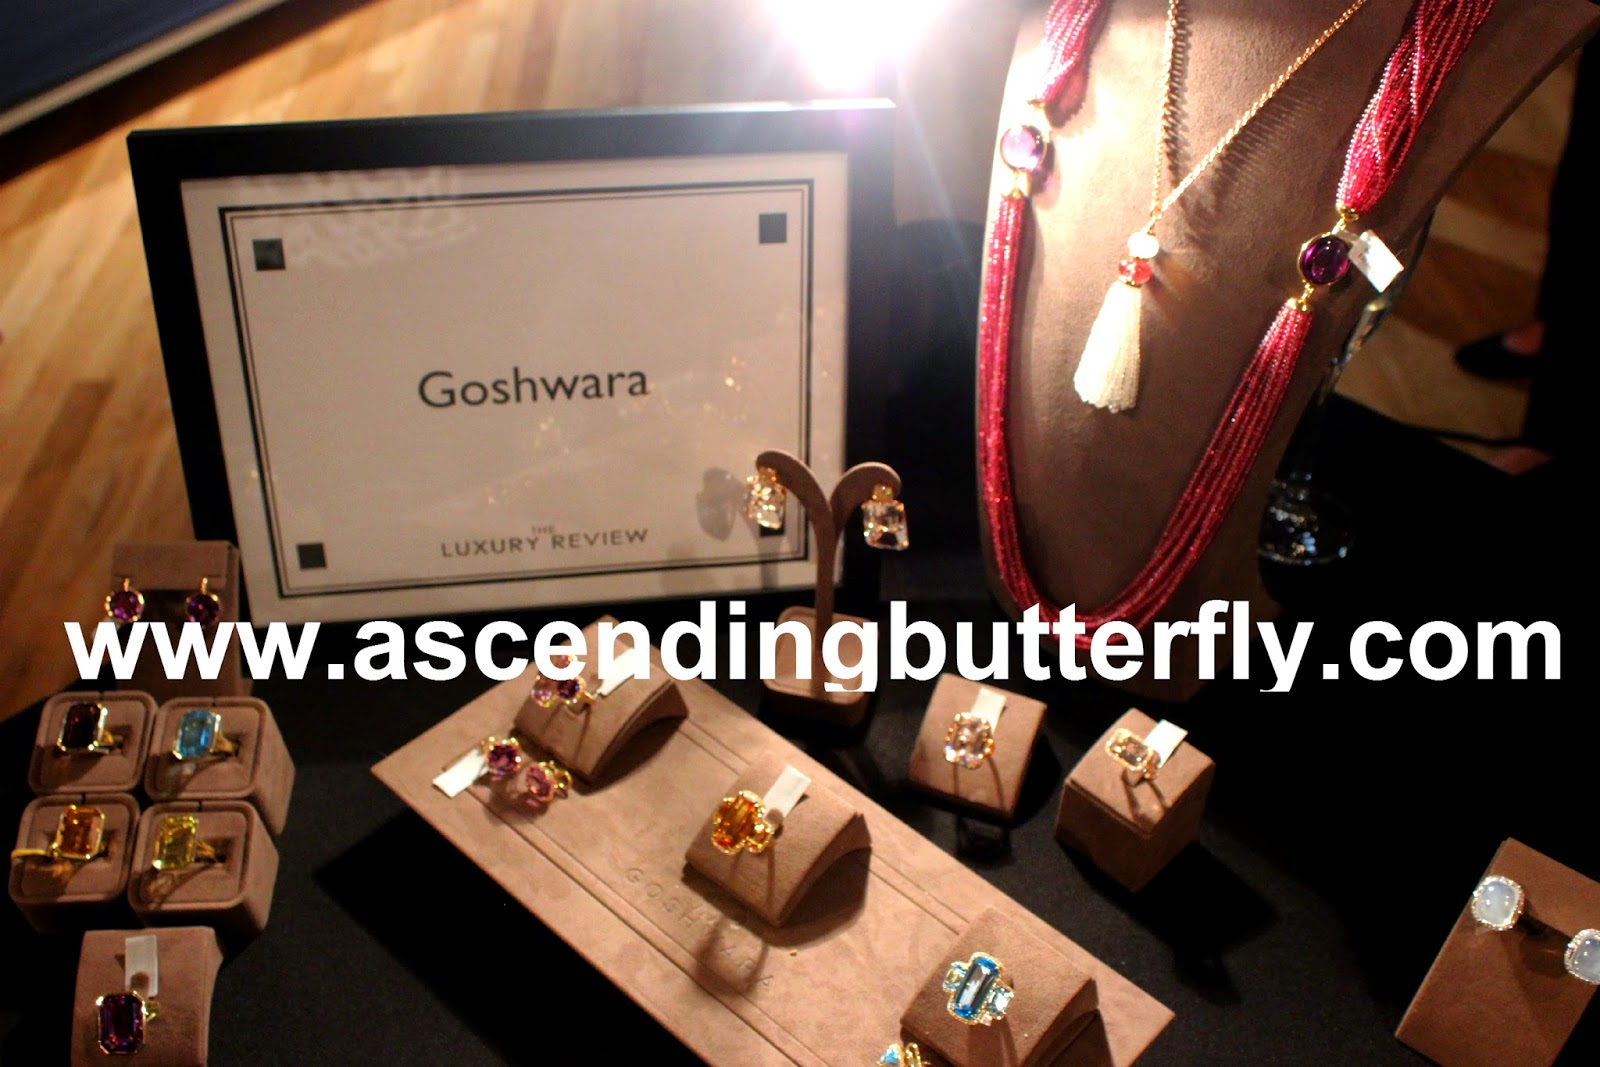 Goshwara Jewelry The Luxury Review Fall 2014